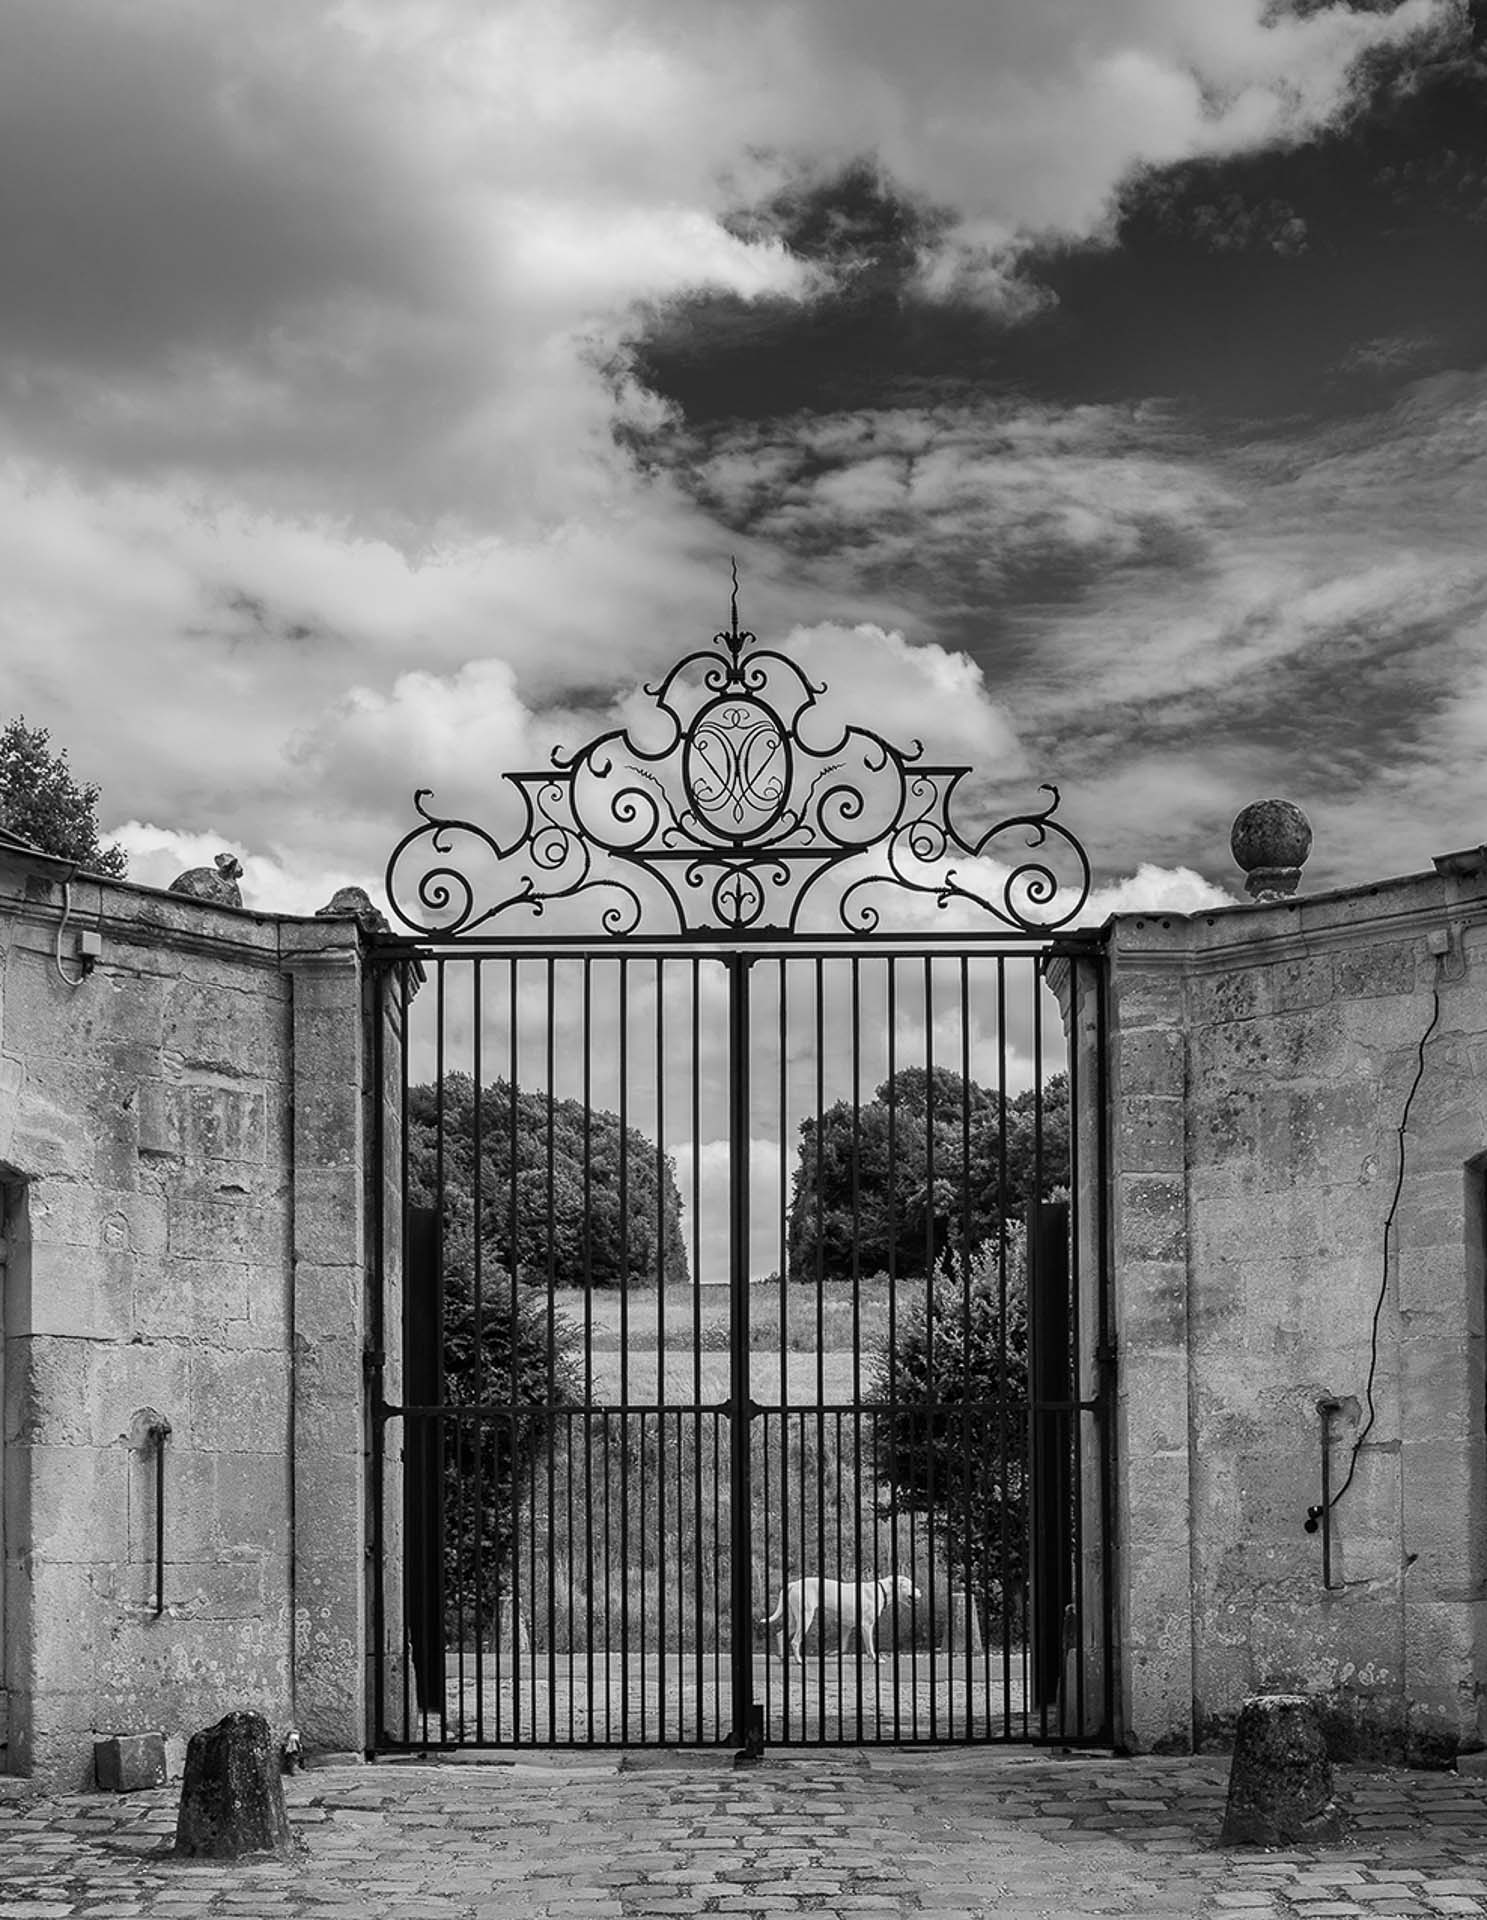 Chateau de Villette private luxurious residence frontal gate view place for events weddings seminars dinners luxury accommodation 10 left